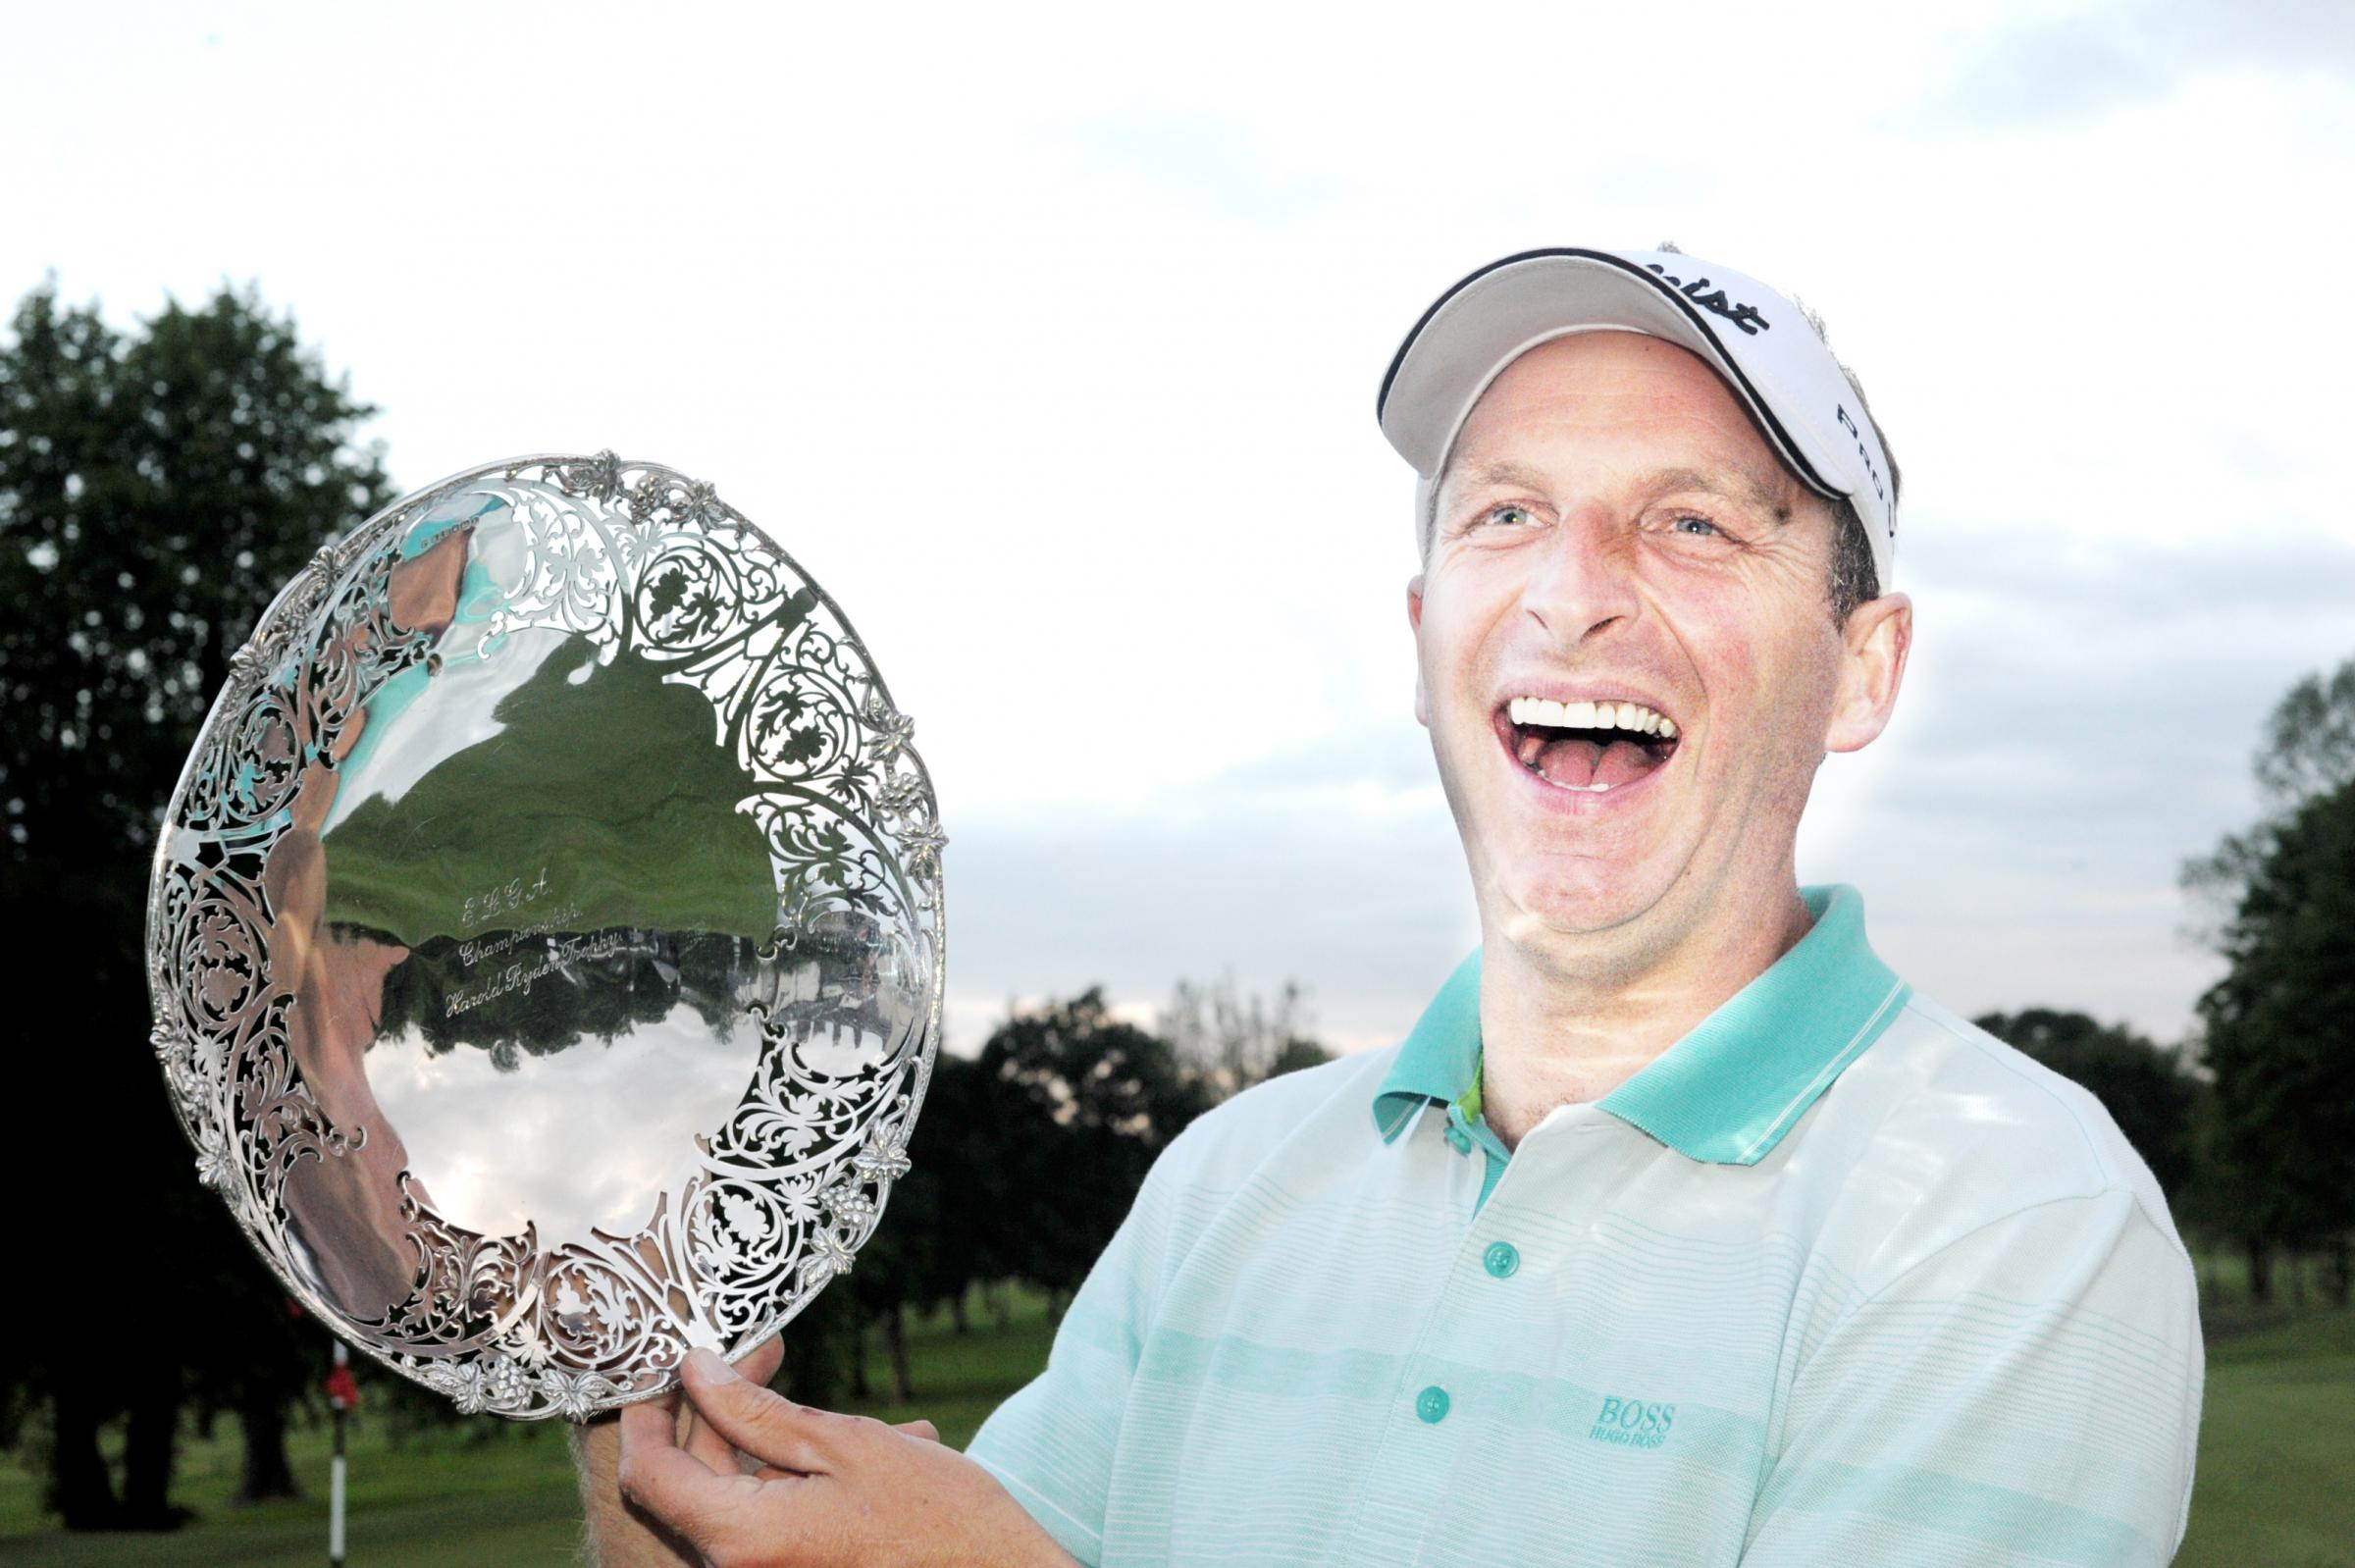 TRIUMPH: Michael Hunt celebrates with the Harold Ryden Trophy after a victory over Blackburn's Anthony Harwood on his home course of Pleasington on Wednesday night